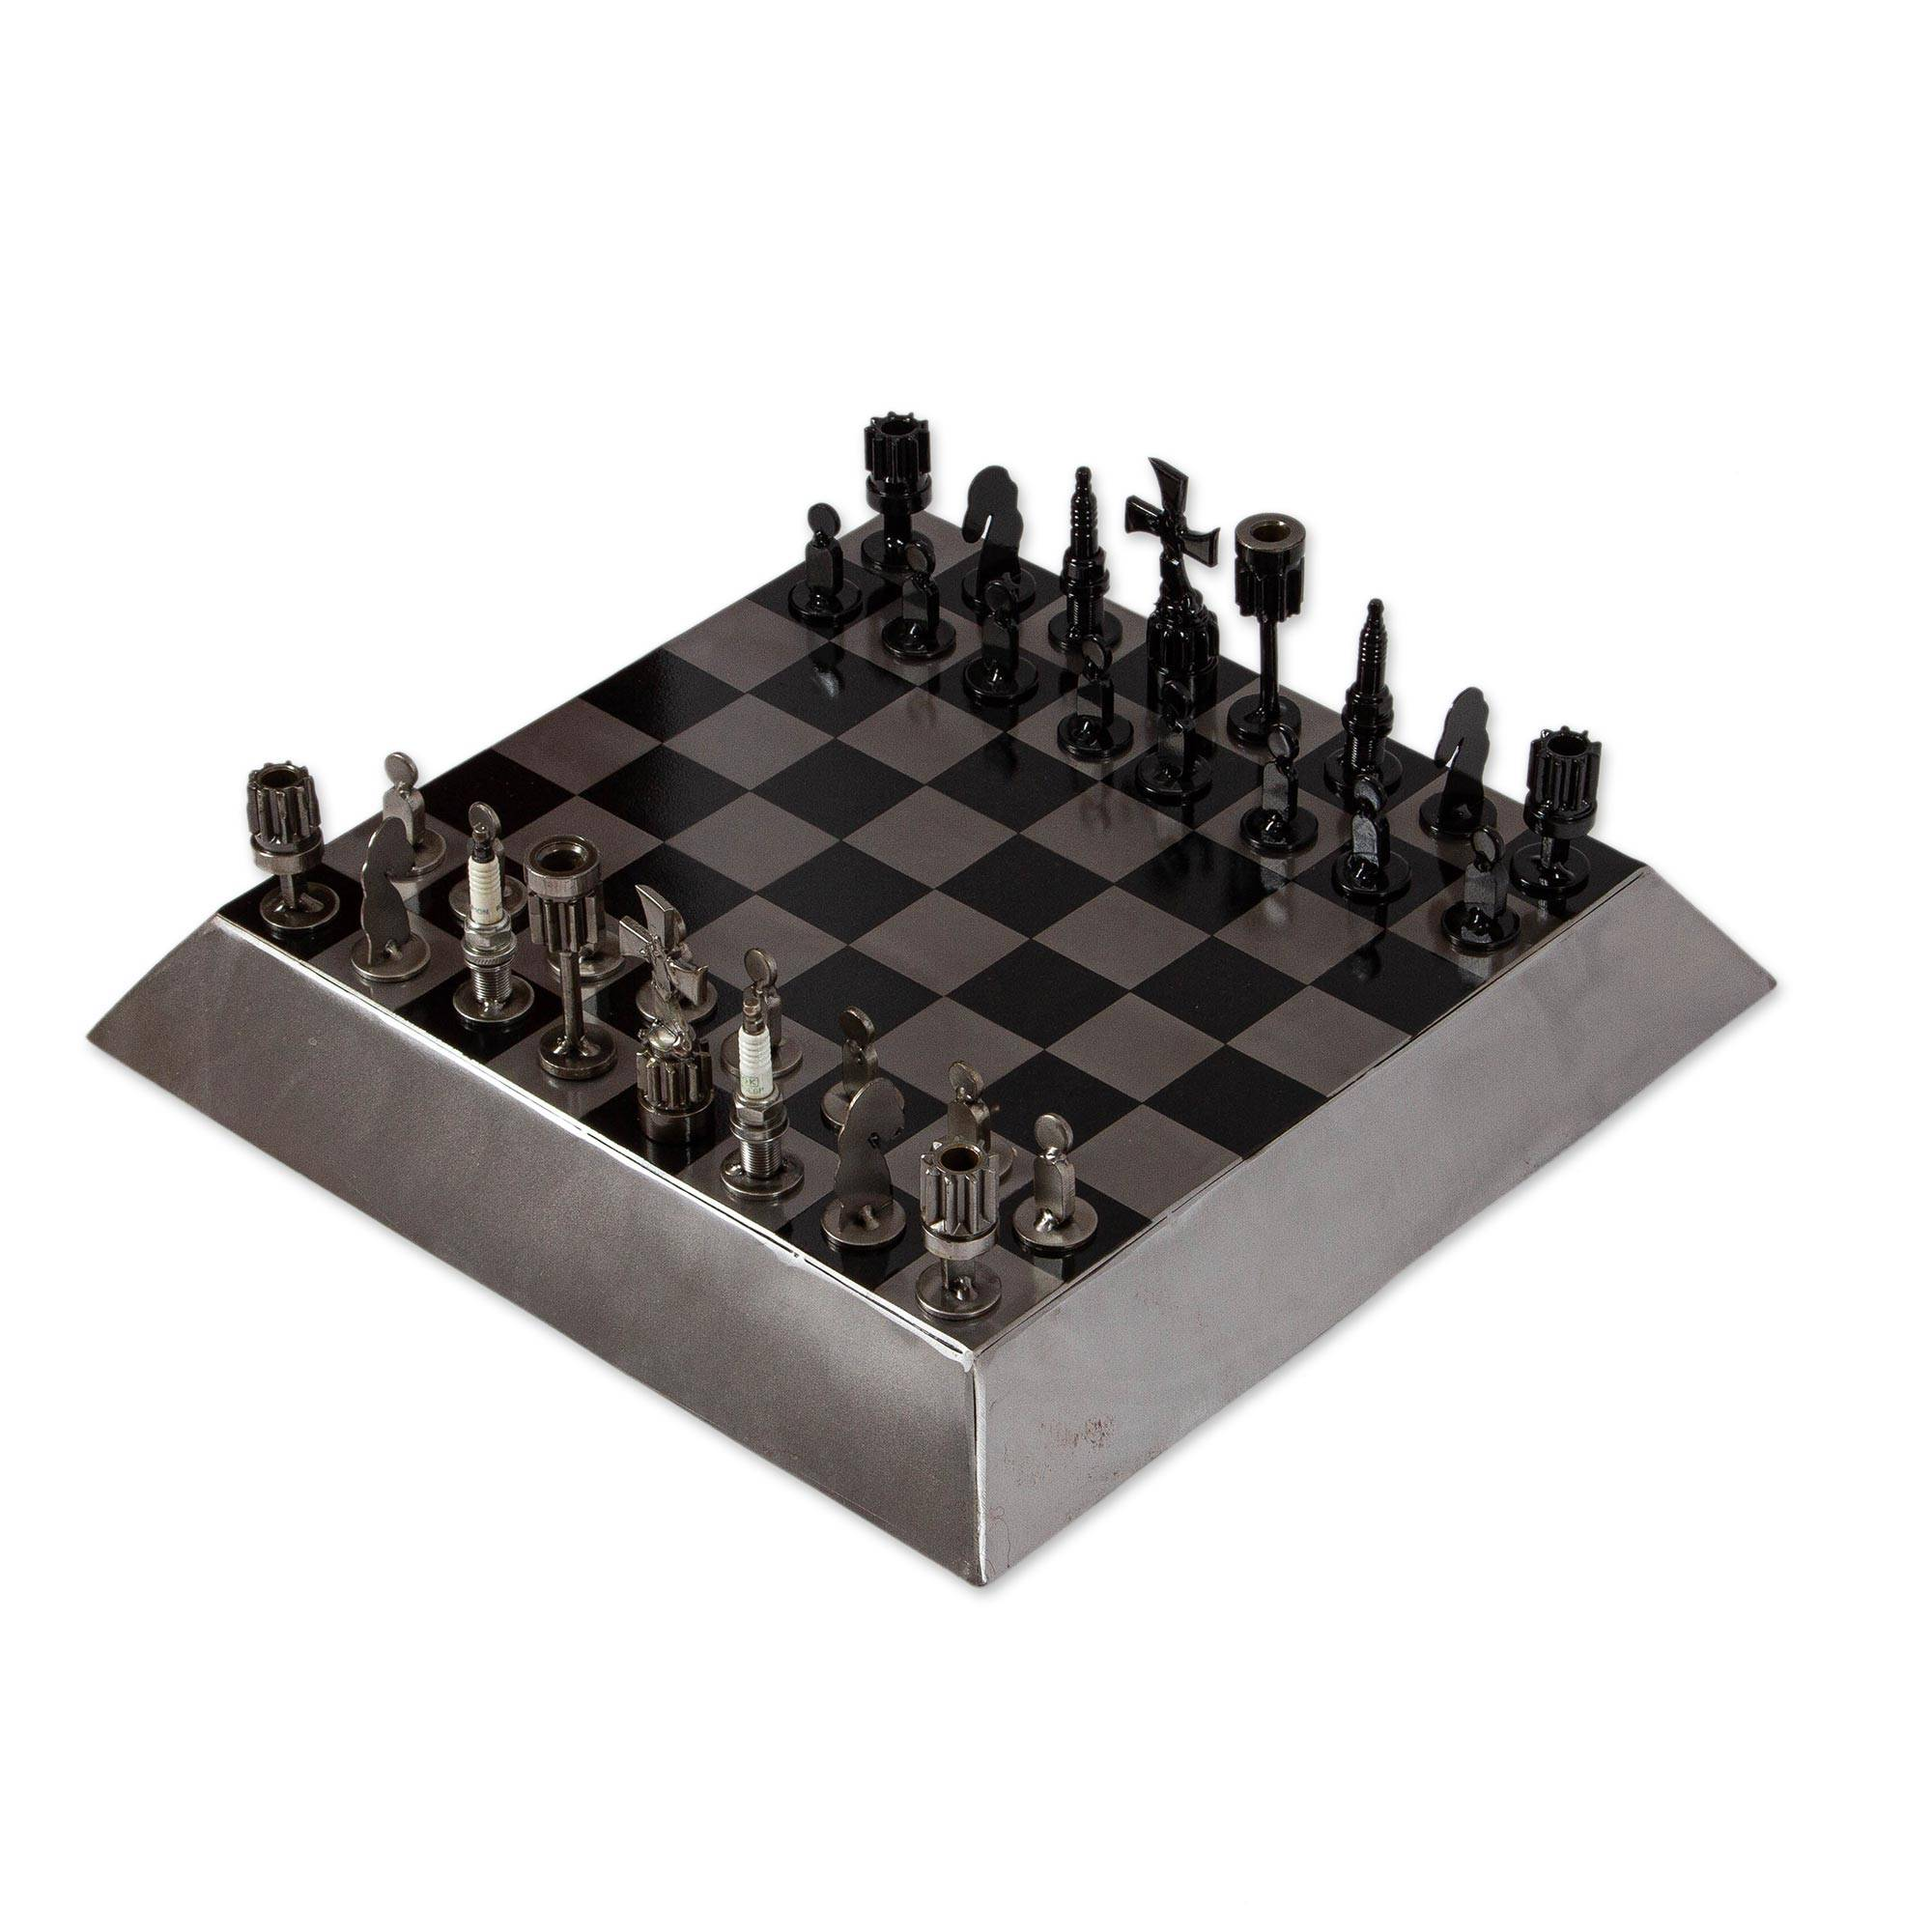 Decorative Chess Sets Chess Sets & Games  Handcrafted Chess Sets At Novica